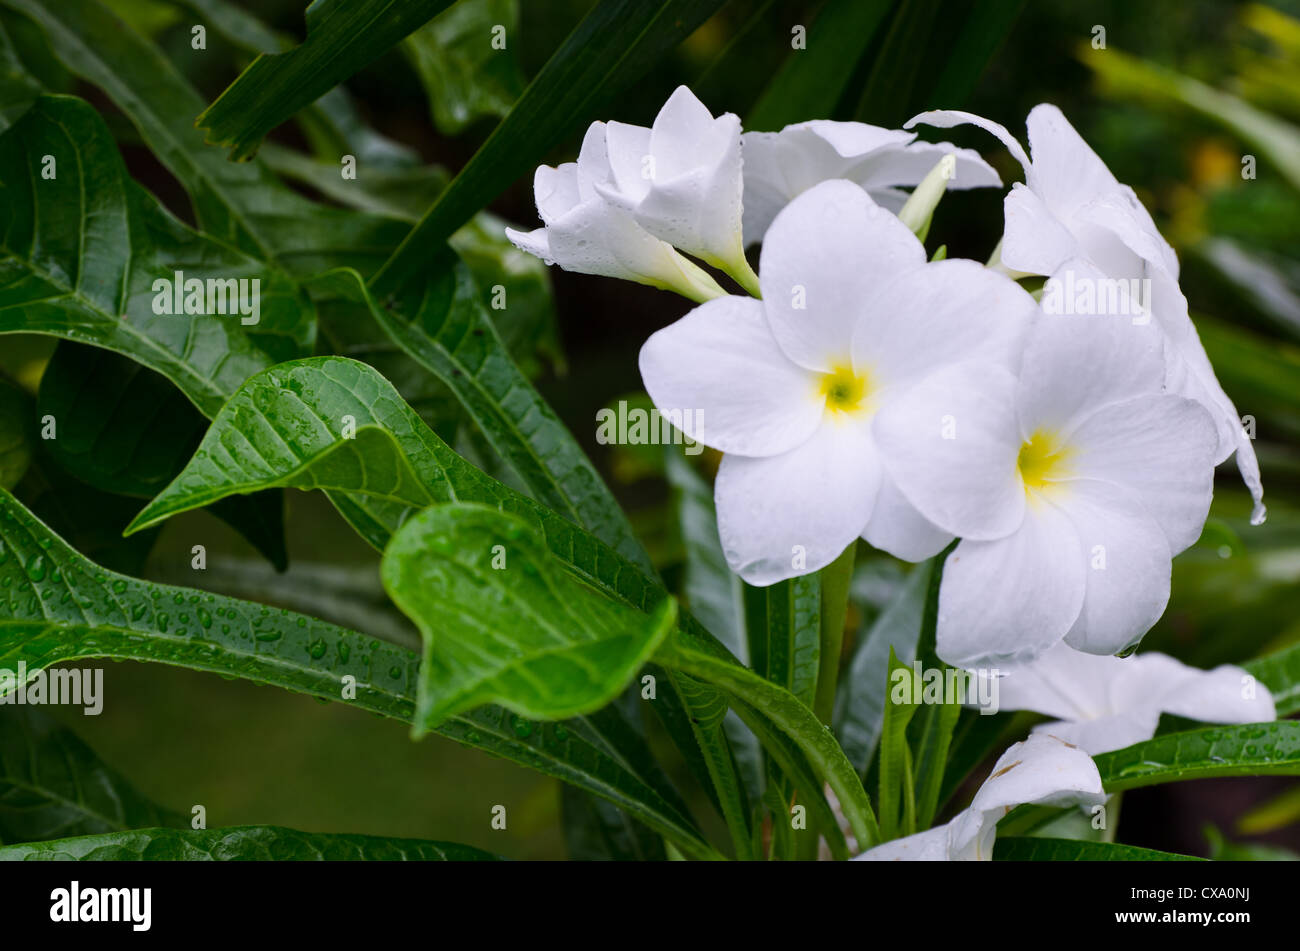 White blossom flower from thailand stock photo 50621918 alamy white blossom flower from thailand mightylinksfo